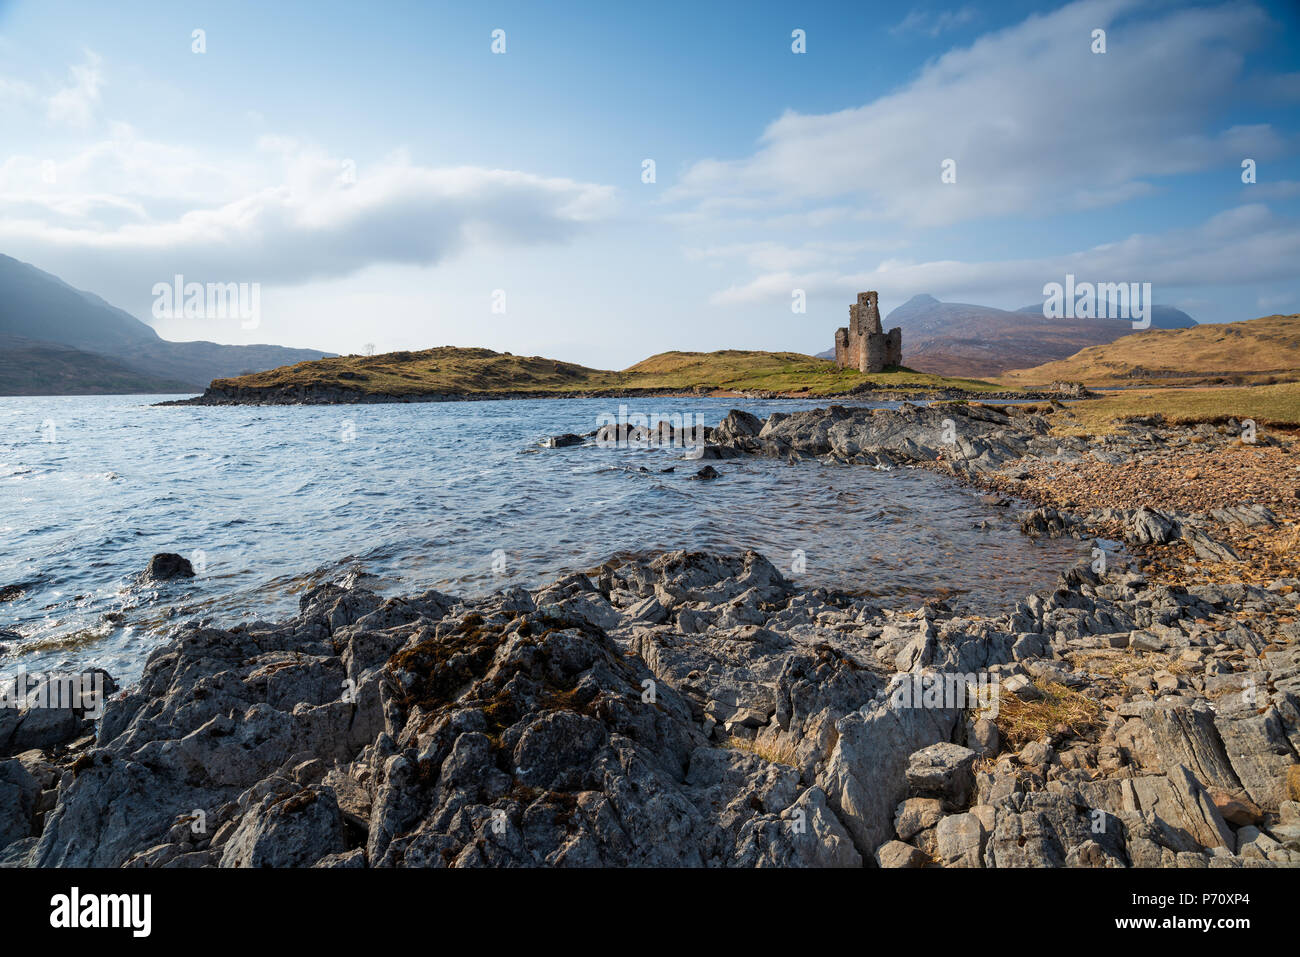 The ruins of Ardvreck Castle at Loch Assynt in the highlands of Scotland - Stock Image